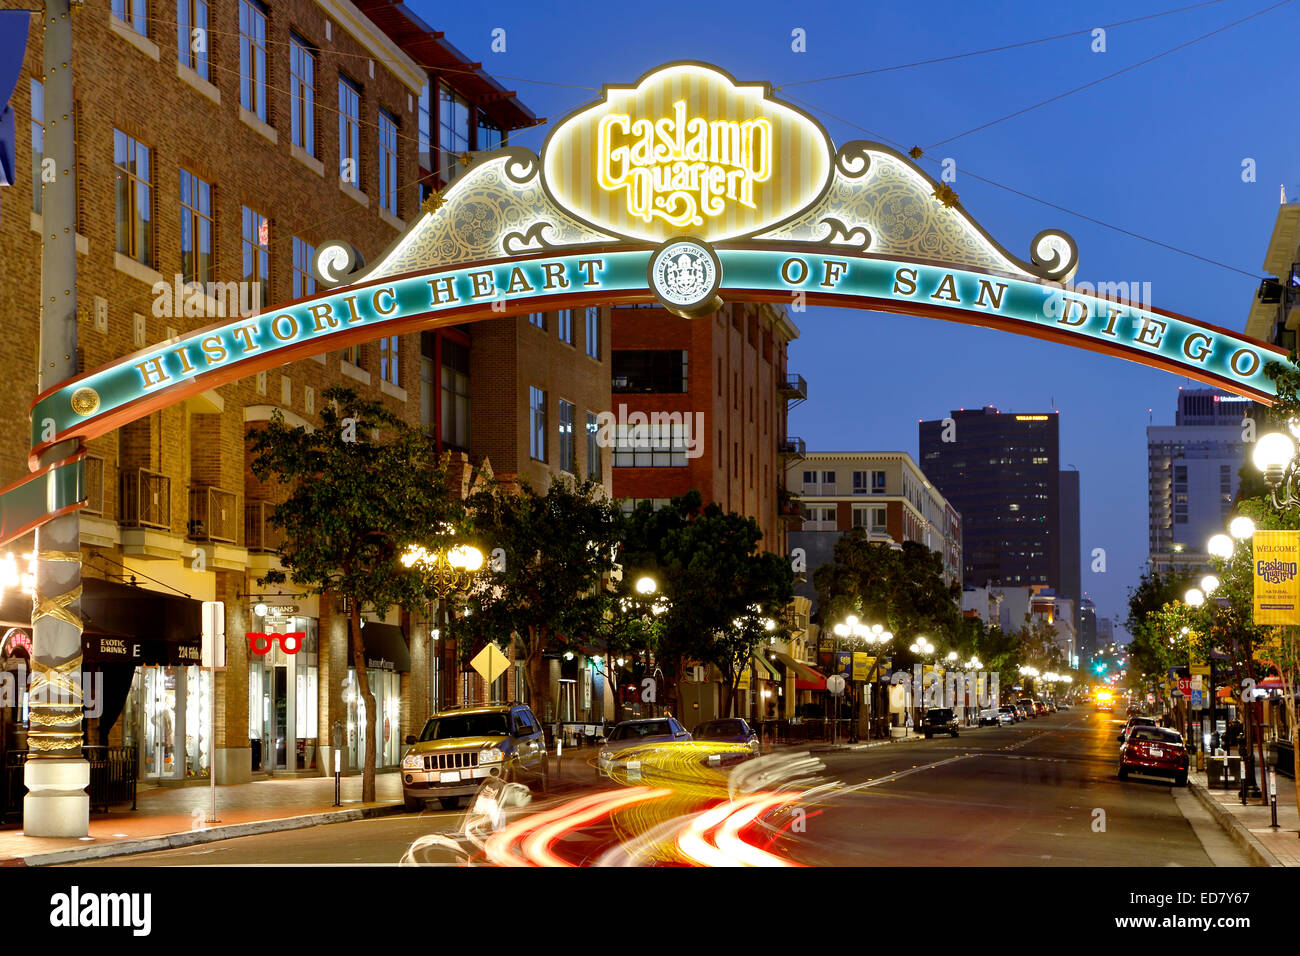 Historic Gaslamp Quarter, San Diego, California USA - Stock Image